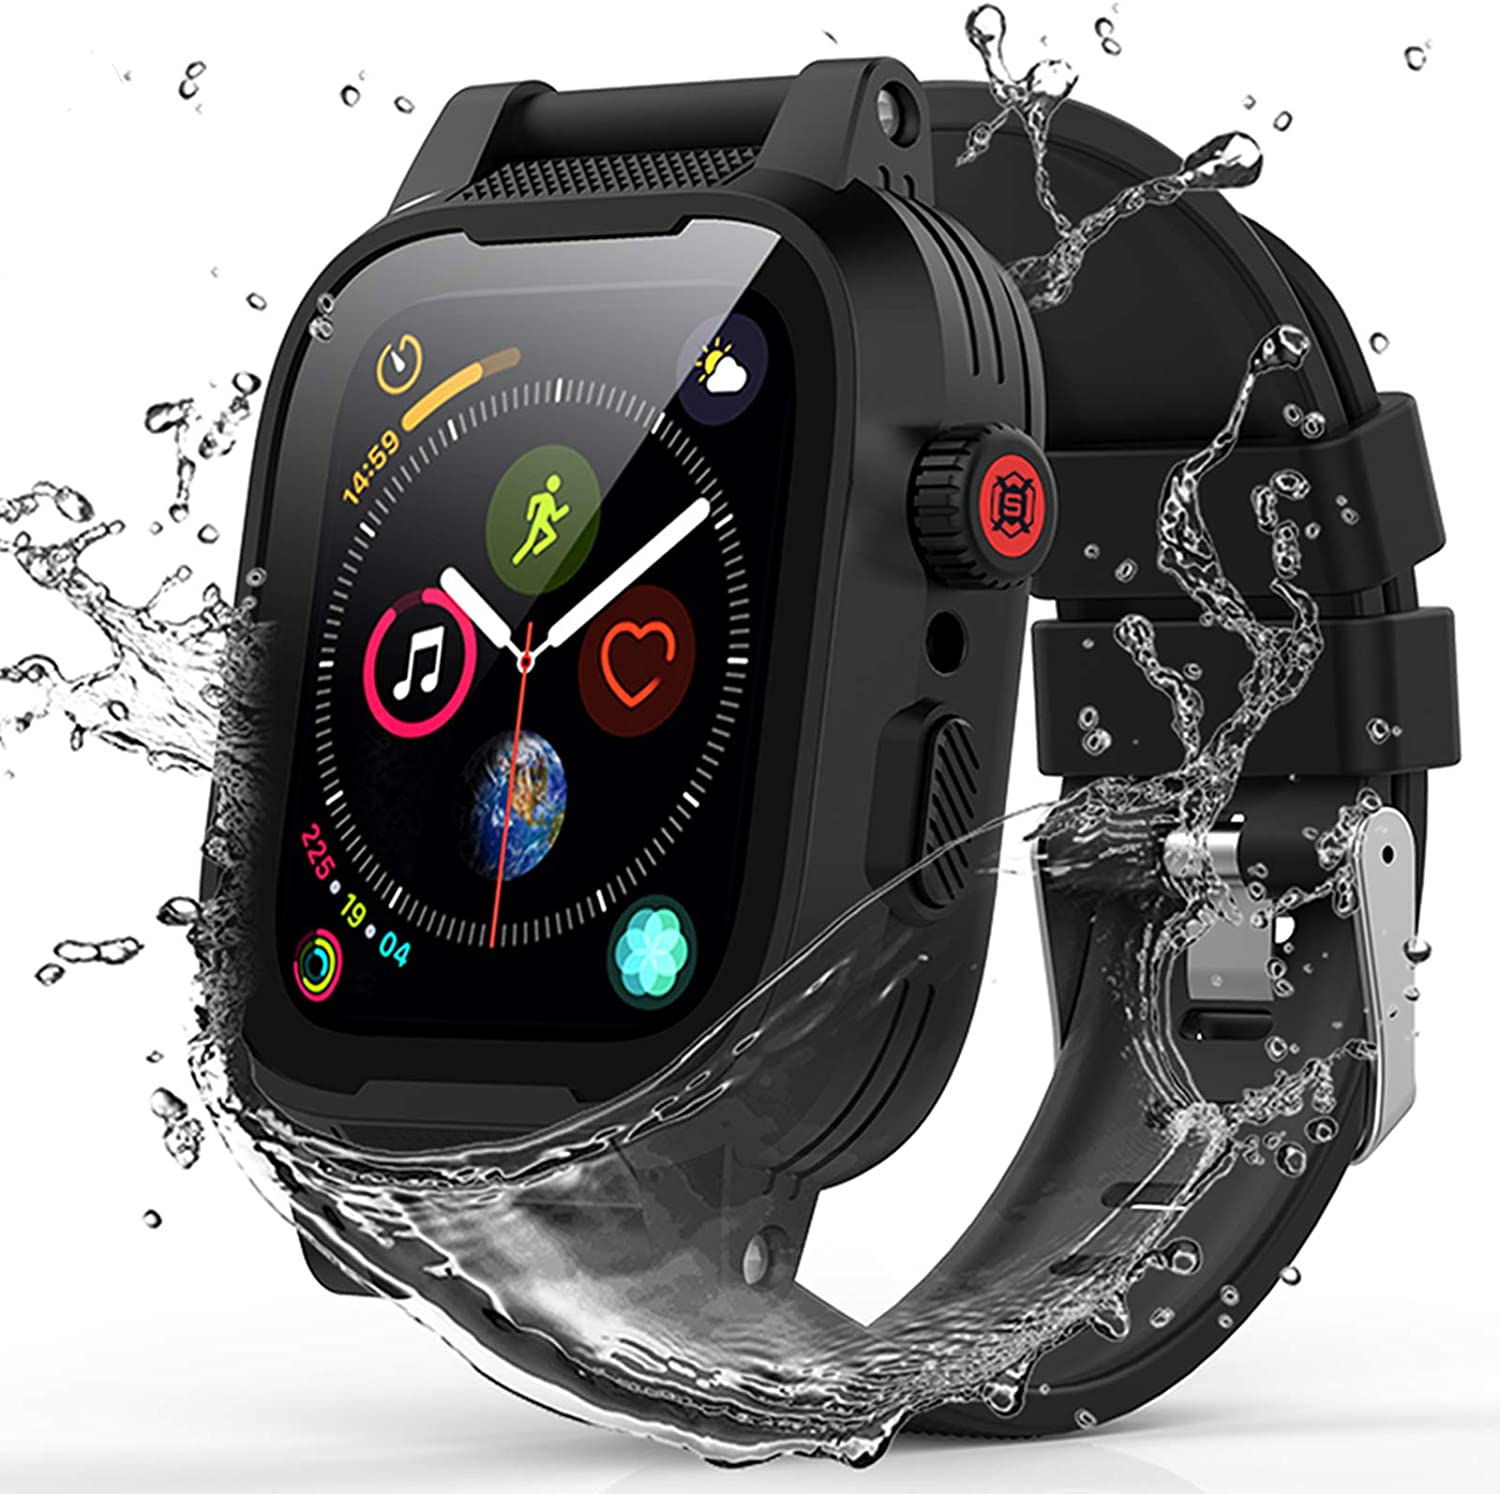 YOGRE Waterproof iWatch Case for Apple Watch Series 6/5/4/SE 44mm, IP68 Waterproof Shockproof Impact Resistant Apple iWatch Full Body Protective Case with Built-in Screen Protector(Add 2 Bands)